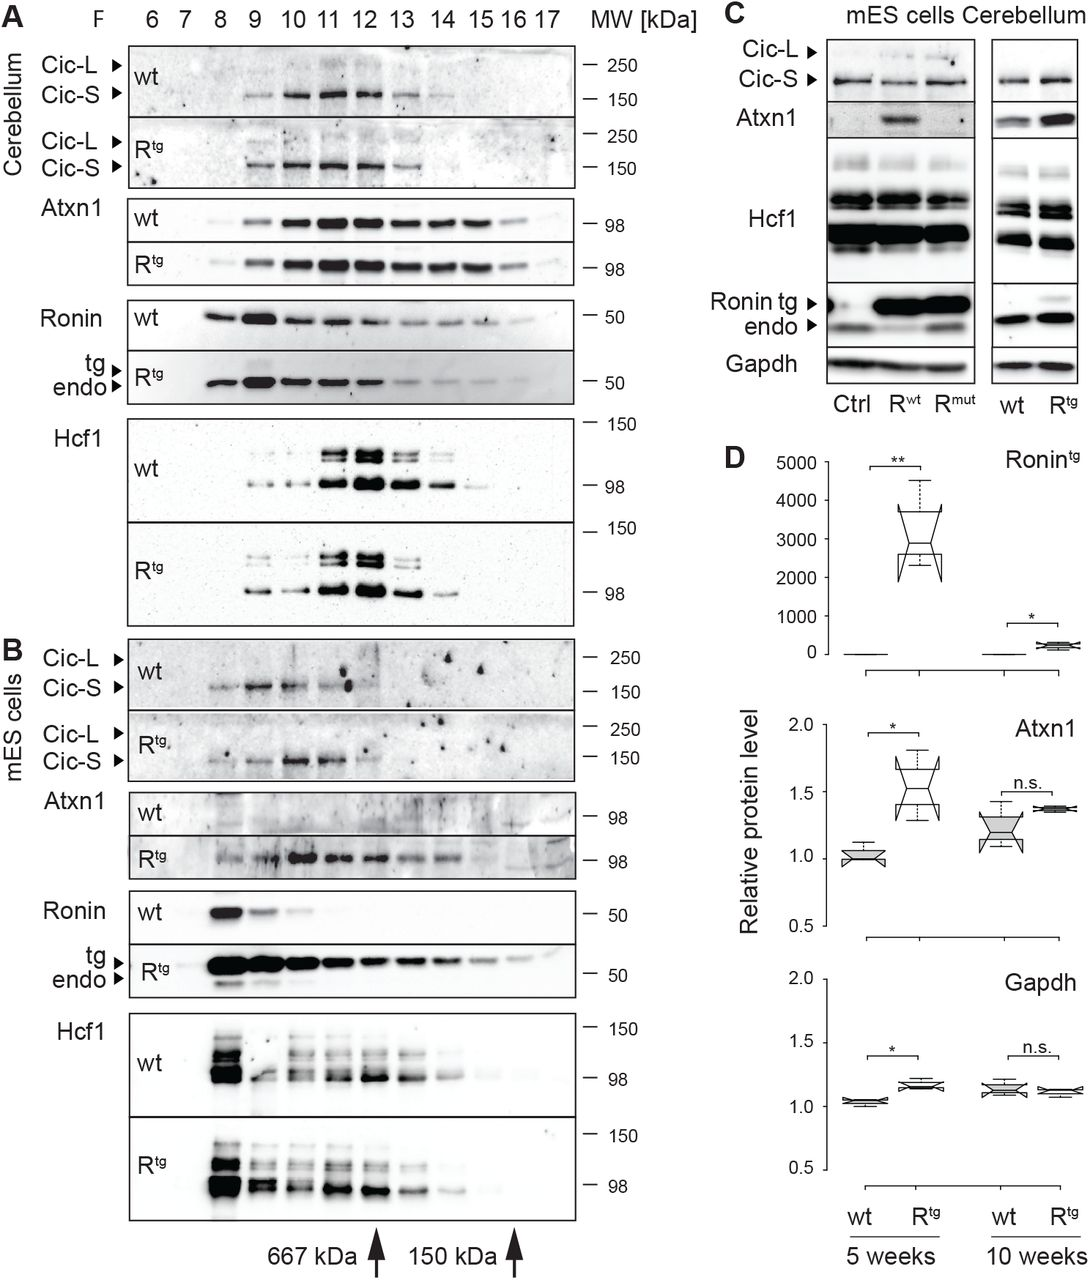 Transgenic expression of Ronin induces Atxn1. Representative Western blots of protein fractions collected by size exclusion chromatography of ( A ) cerebellar extracts or ( B ) mouse embryonic stem cell (mES) cell lysates. The size exclusion standards thyroglobulin (669 kDa) and ADH (150 kDa) are indicated. In the cerebellum, Ronin is part of a large protein complex that only partially overlaps with Hcf1. In ES cells, Atxn 1 expression is induced by transgenic expression of Ronin. Ronin and Hcf1 are eluting in similar fractions, indicating that they are part of the same protein complex. ( C ) Western blot analyses of equal protein amounts of ES cell lysates (left) or cerebellar extracts from 10-week-old animals (right) of indicated genotypes. While Atxn1 protein is not expressed in control ES cells overexpressing Luciferase (Ctrl), it is induced in Ronin overexpressing ES cells (R wt ) but not in cells overexpressing a Ronin mutant incapable of binding to Hcf1 (R mut ). Atxn1 levels are also elevated in vivo in transgenic (R tg ) animals when compared to wt controls. ( D ) Quantification of transgenic Ronin, Atxn1 and Gapdh protein levels as detected by Western blot in cerebellar extracts at 5 and 10 weeks of age. At 5 weeks, a ~1.5-fold induction of Atxn1 is observed in transgenic Ronin animals when compared with wildtype littermates. Reflective of the decrease in Purkinje cells, at 10 weeks of age the expression of transgenic Ronin and Atxn1 induction were drastically reduced in comparison to the earlier time point. n=3; **p